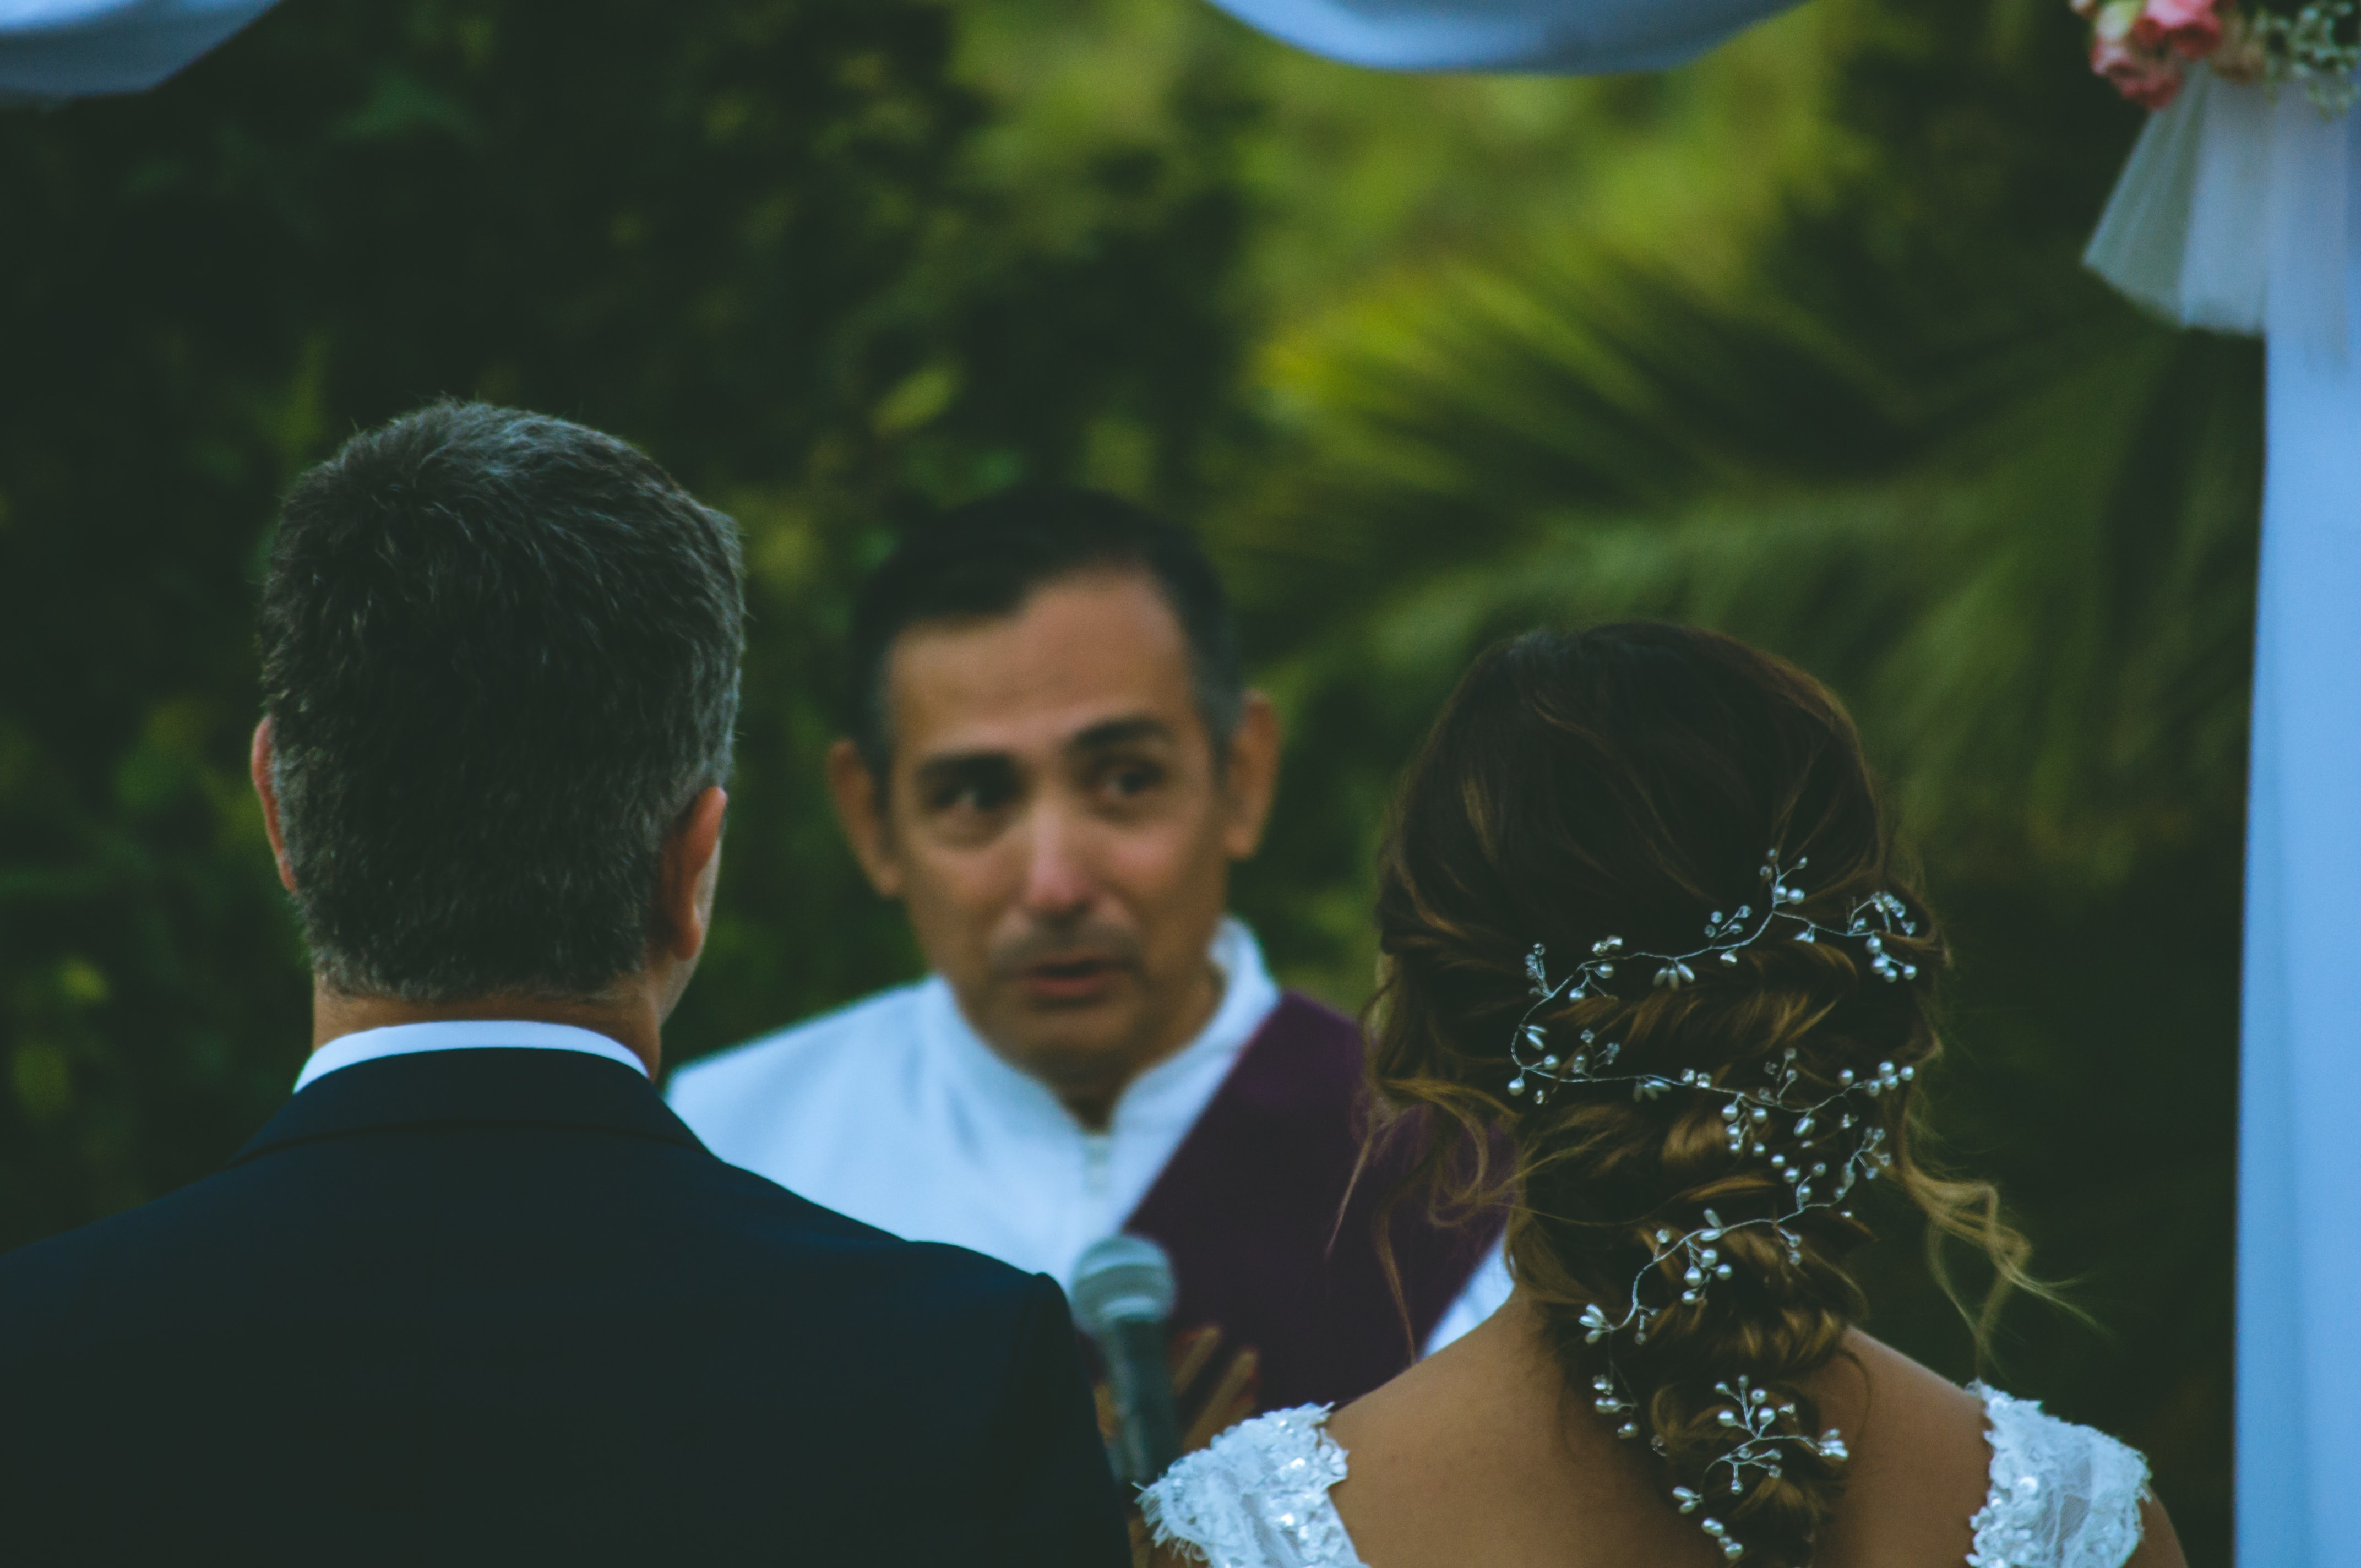 wedding officiant at the alter with the bride and groom